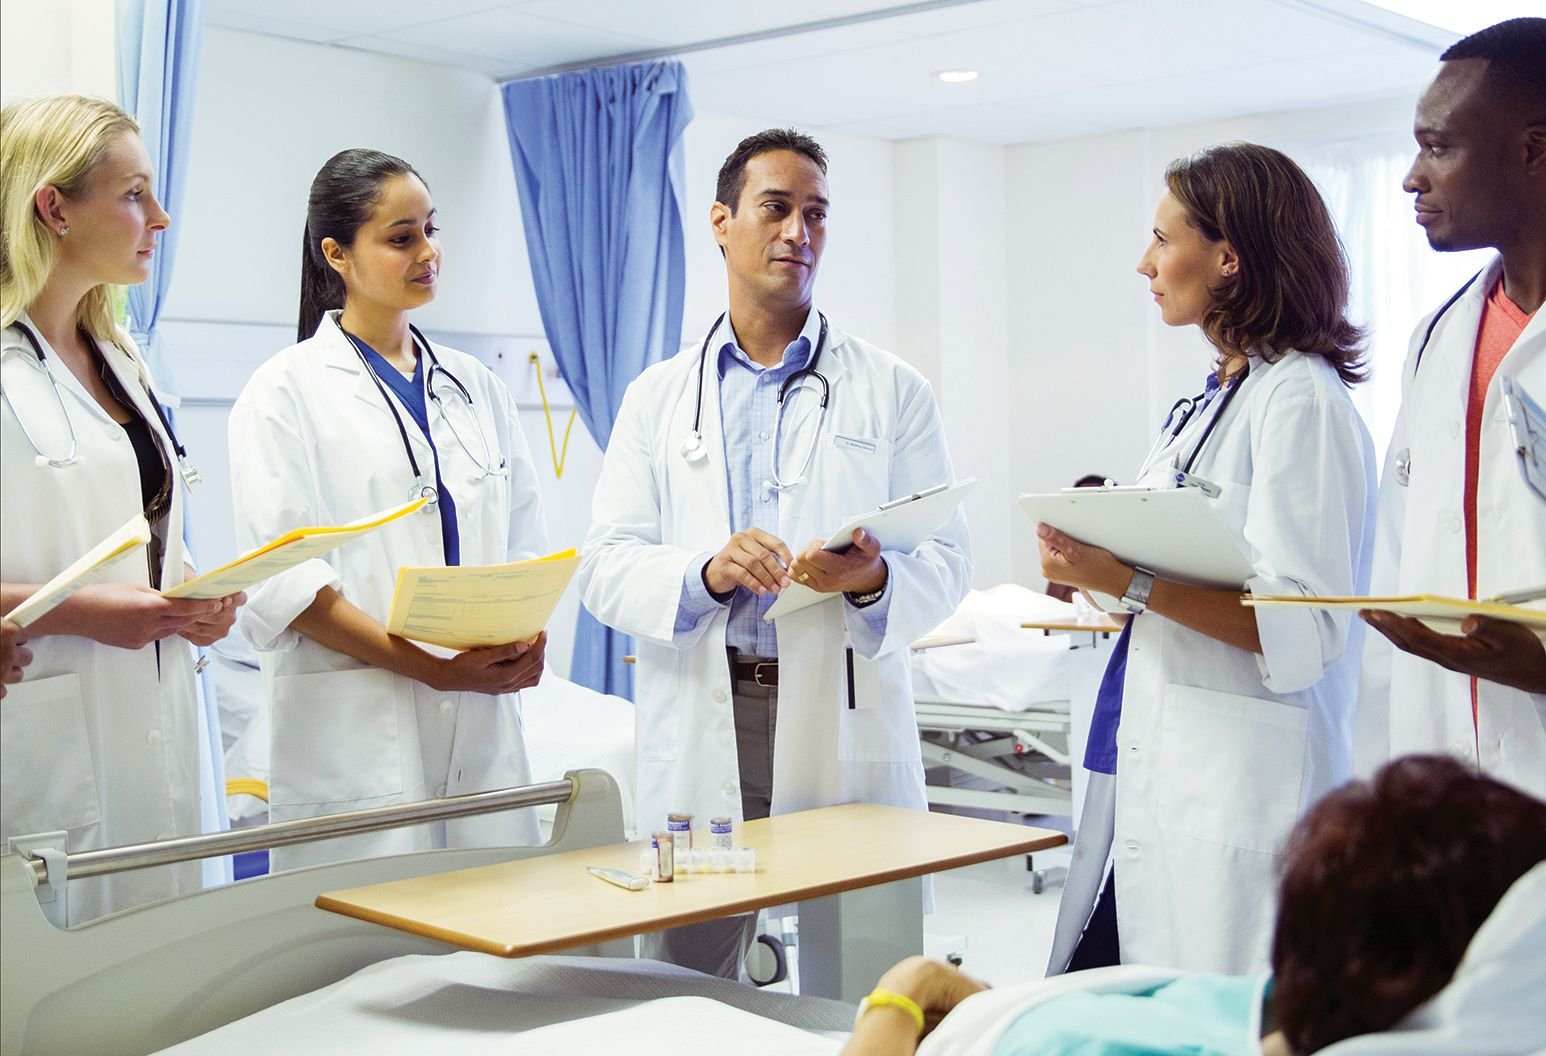 Two physicians discussing a case.